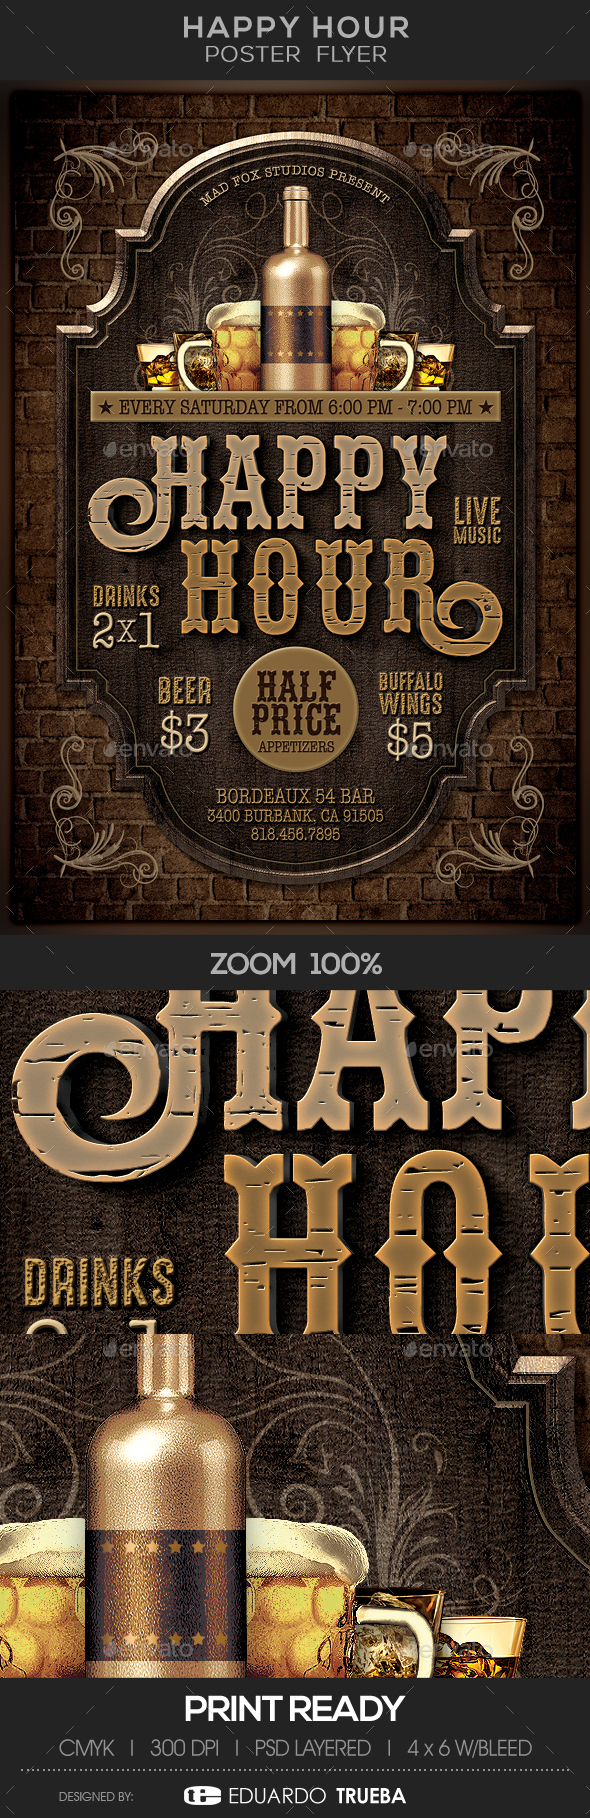 Happy Hour Poster Flyer - Flyers Print Templates